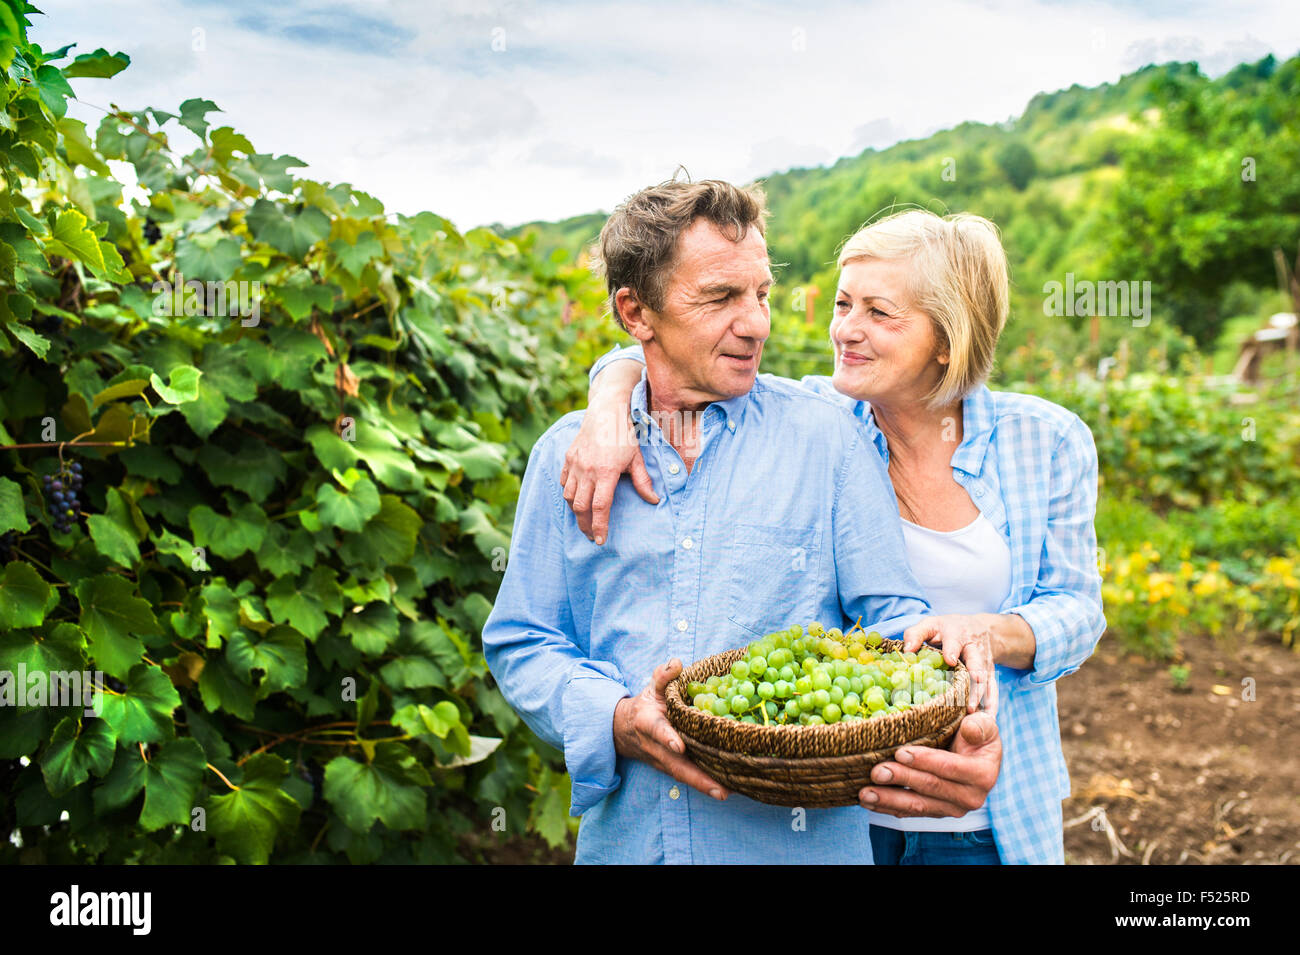 Couple harvesting grapes - Stock Image